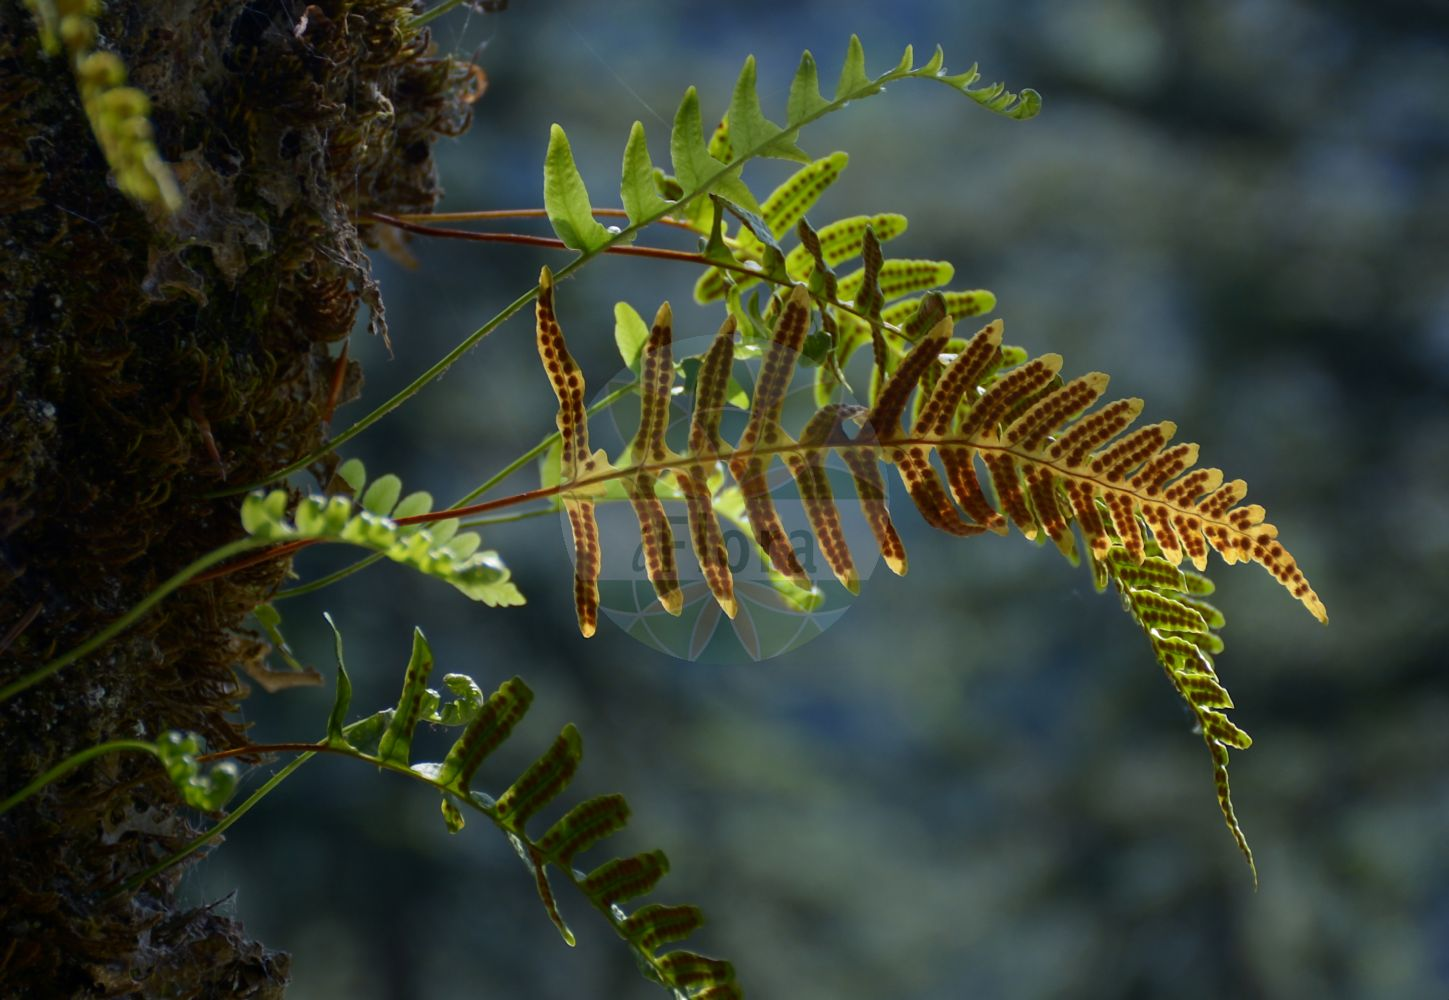 Foto von Polypodium vulgare (Gewoehnlicher Tuepfelfarn - Polypody). Das Bild zeigt Blatt und Spore. Das Foto wurde in Schachen, Garmisch-Partenkirchen, Bayern, Deutschland, Alpen aufgenommen. ---- Photo of Polypodium vulgare (Gewoehnlicher Tuepfelfarn - Polypody).The image is showing leaf and spore.The picture was taken in Schachen, Garmisch-Partenkirchen, Bavaria, Germany, Alps.(Polypodium vulgare,Gewoehnlicher Tuepfelfarn,Polypody,subsp. issaevii,Common ,Polypodium,Tuepfelfarn,Polypodies,Polypodiaceae,Tuepfelfarngewaechse,Polypody family,Blatt,Spore,leaf,spore)